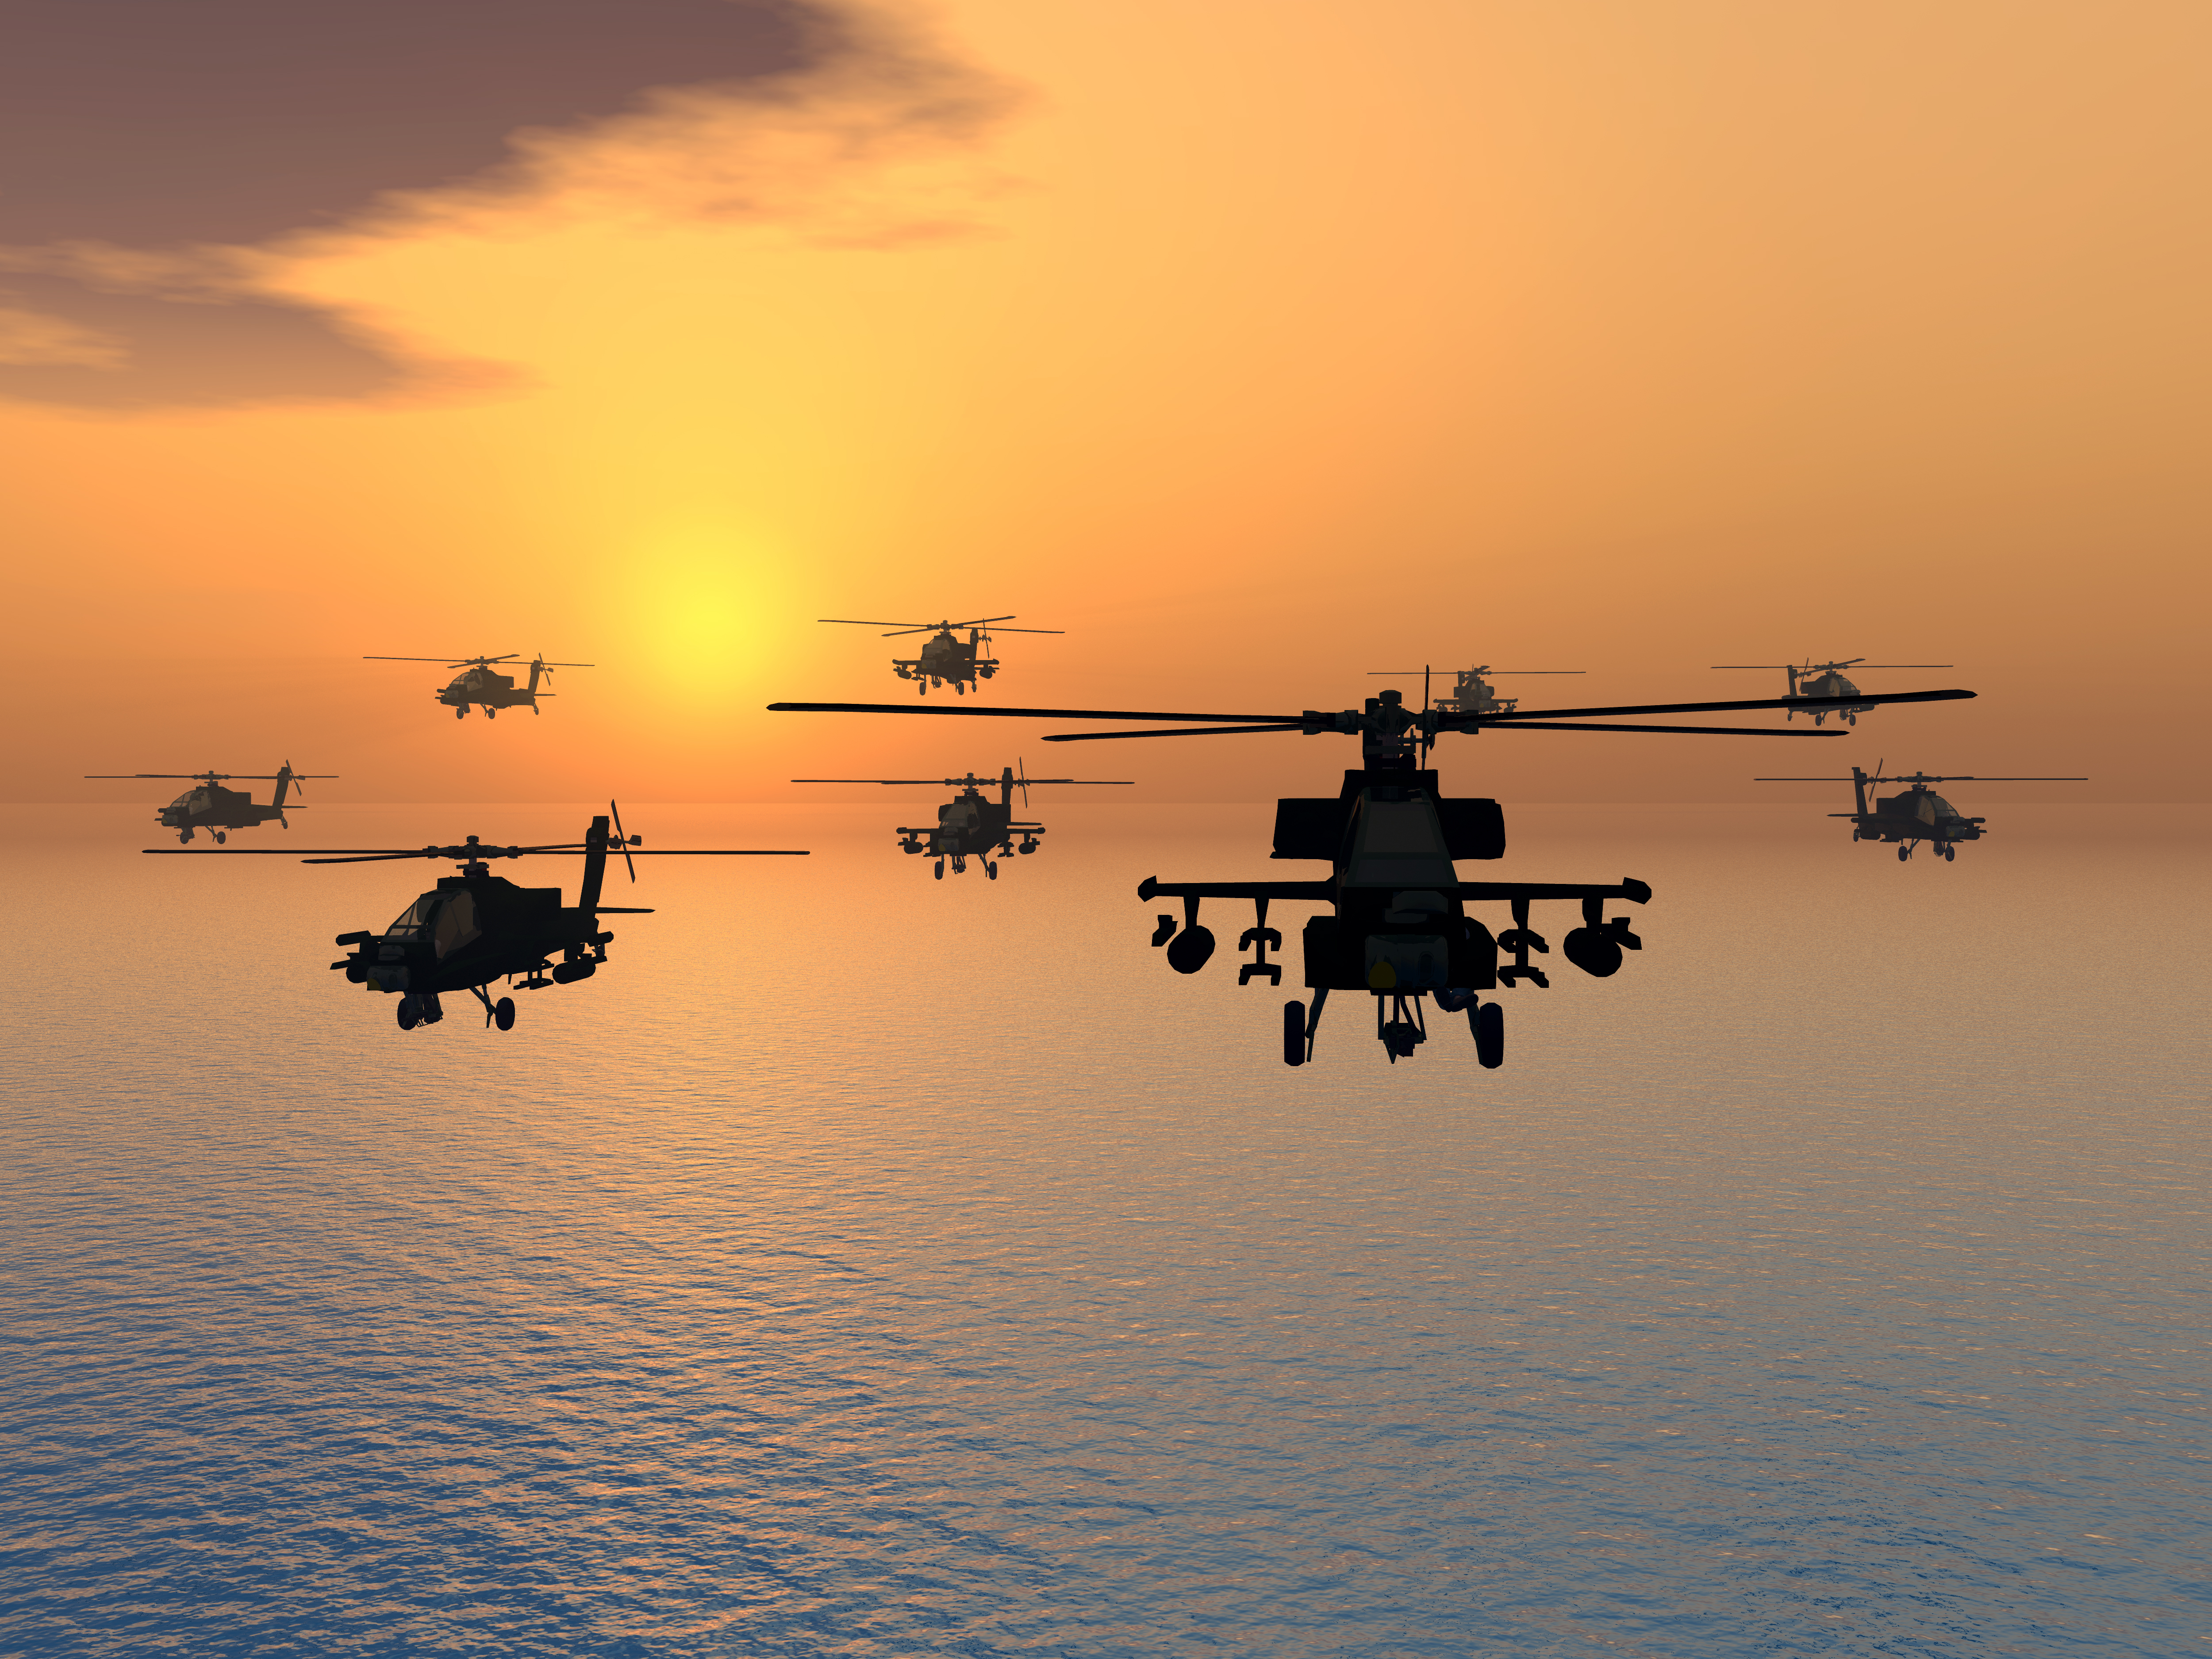 What is an Apache helicopter and what does it do?